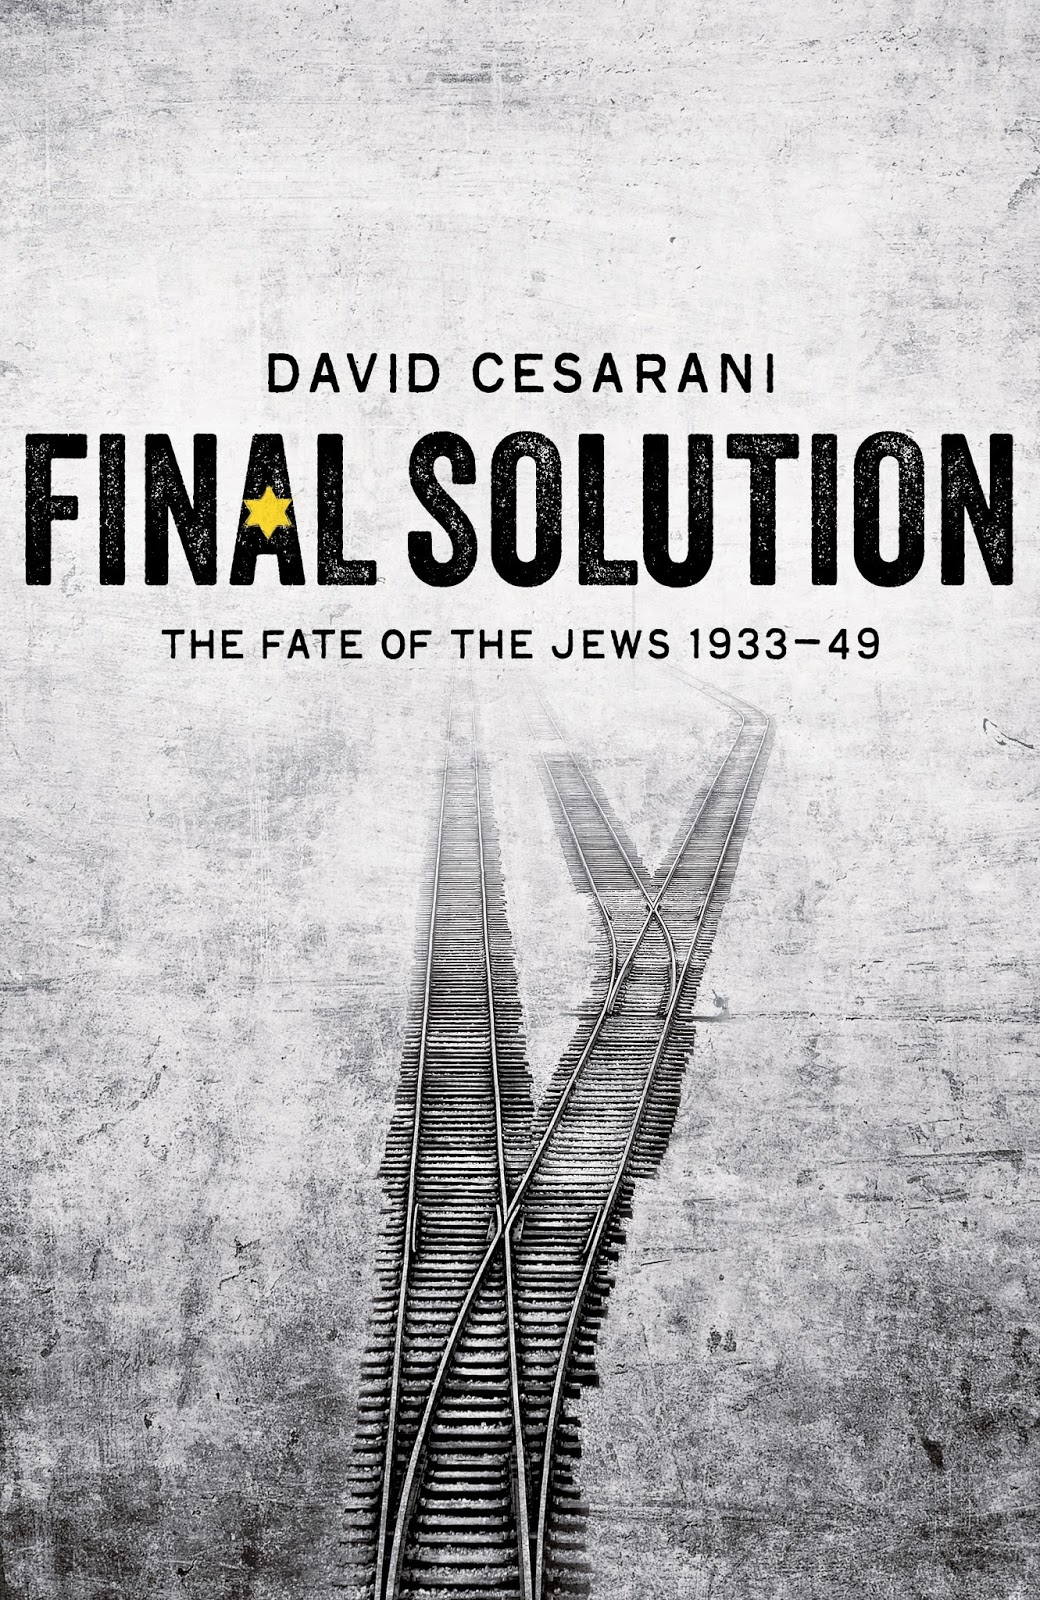 Total war a prediction about donald trump think classical david cesarani final solutionthe fate of the jews 1933 49 fandeluxe Gallery